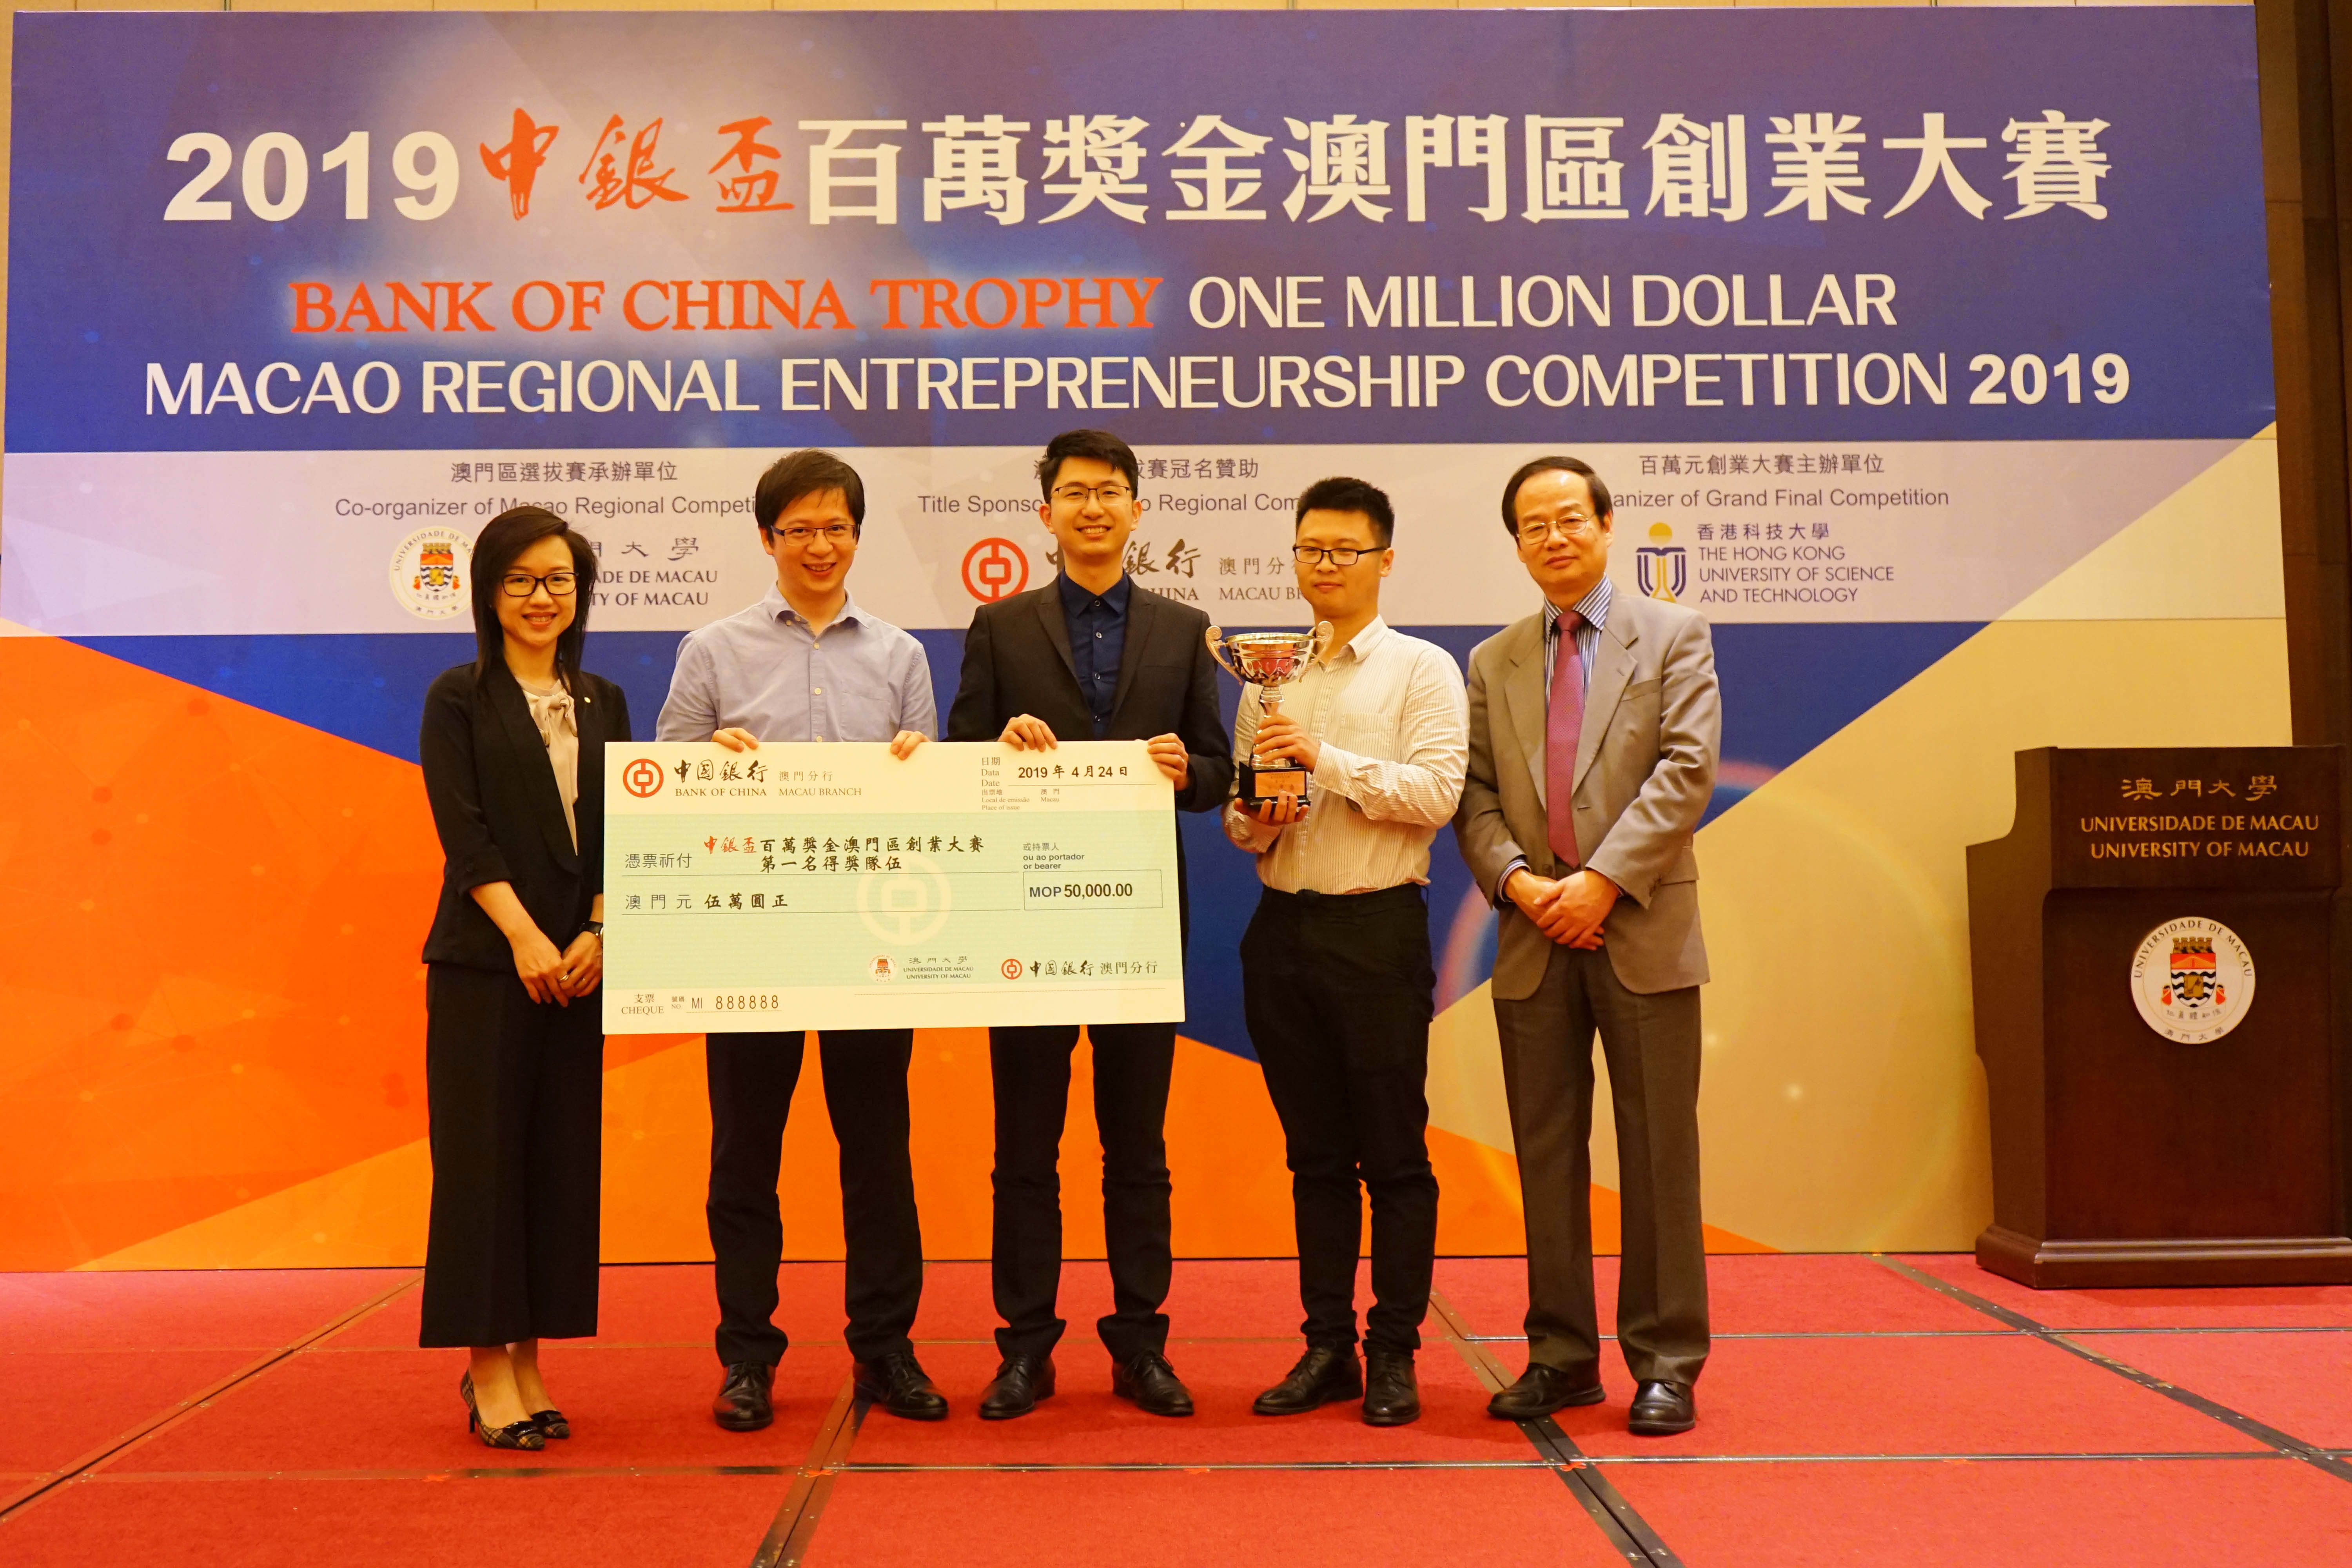 Vice Rector Ge Wei (1st from right) and Integrated Marketing Director of BOC Personal Banking and Channel Management Department Lok Choi Chan (1st from left) present the 1st prize